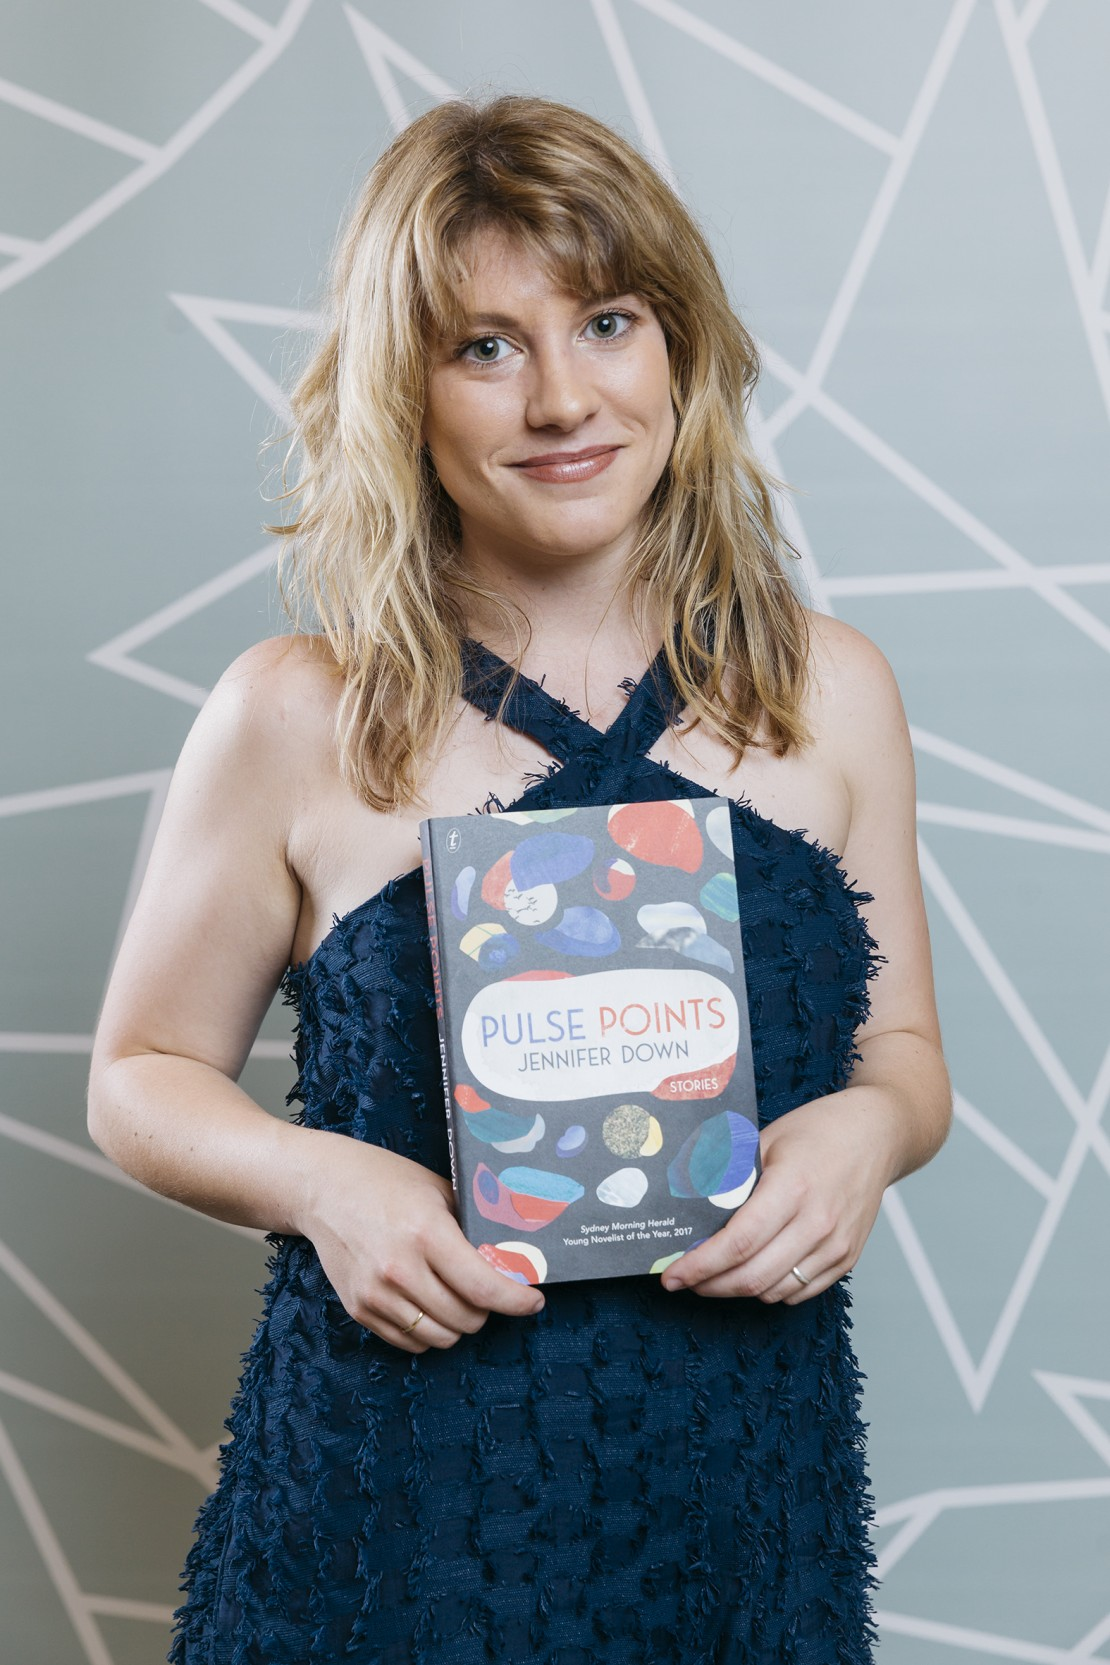 Jennifer Down holding her book Pulse Points